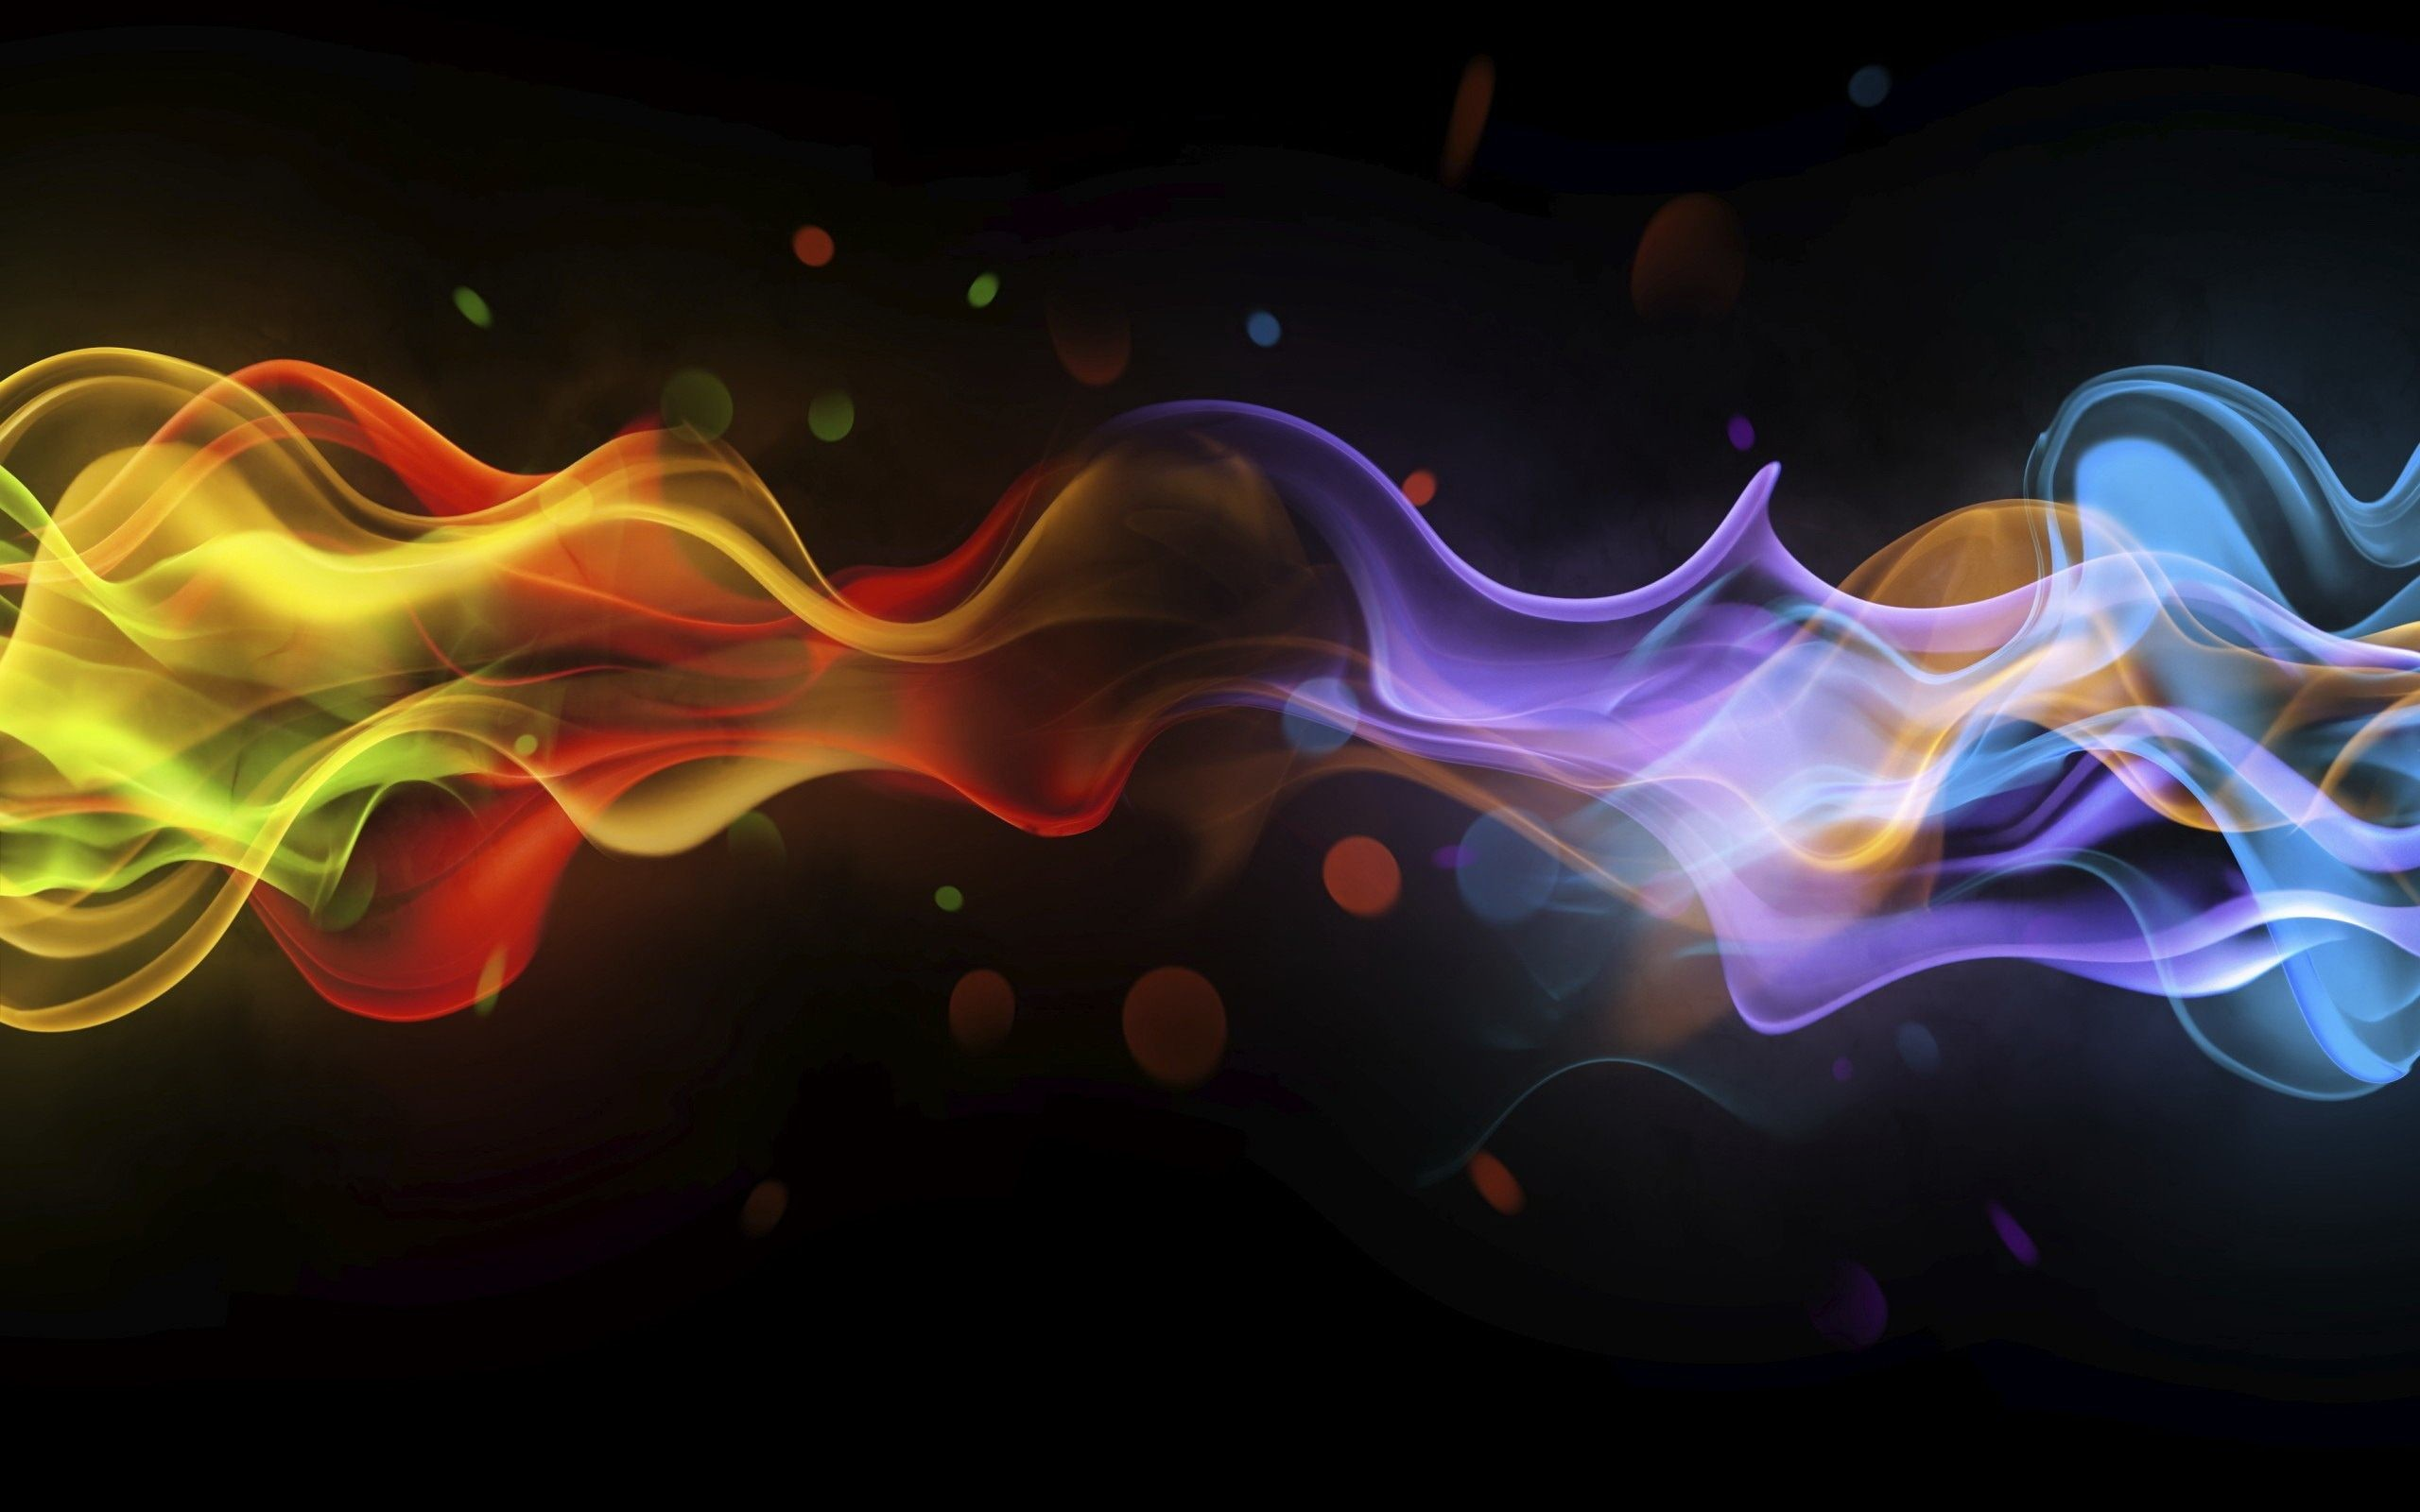 Colorful Smoke Backgrounds (66+ Pictures